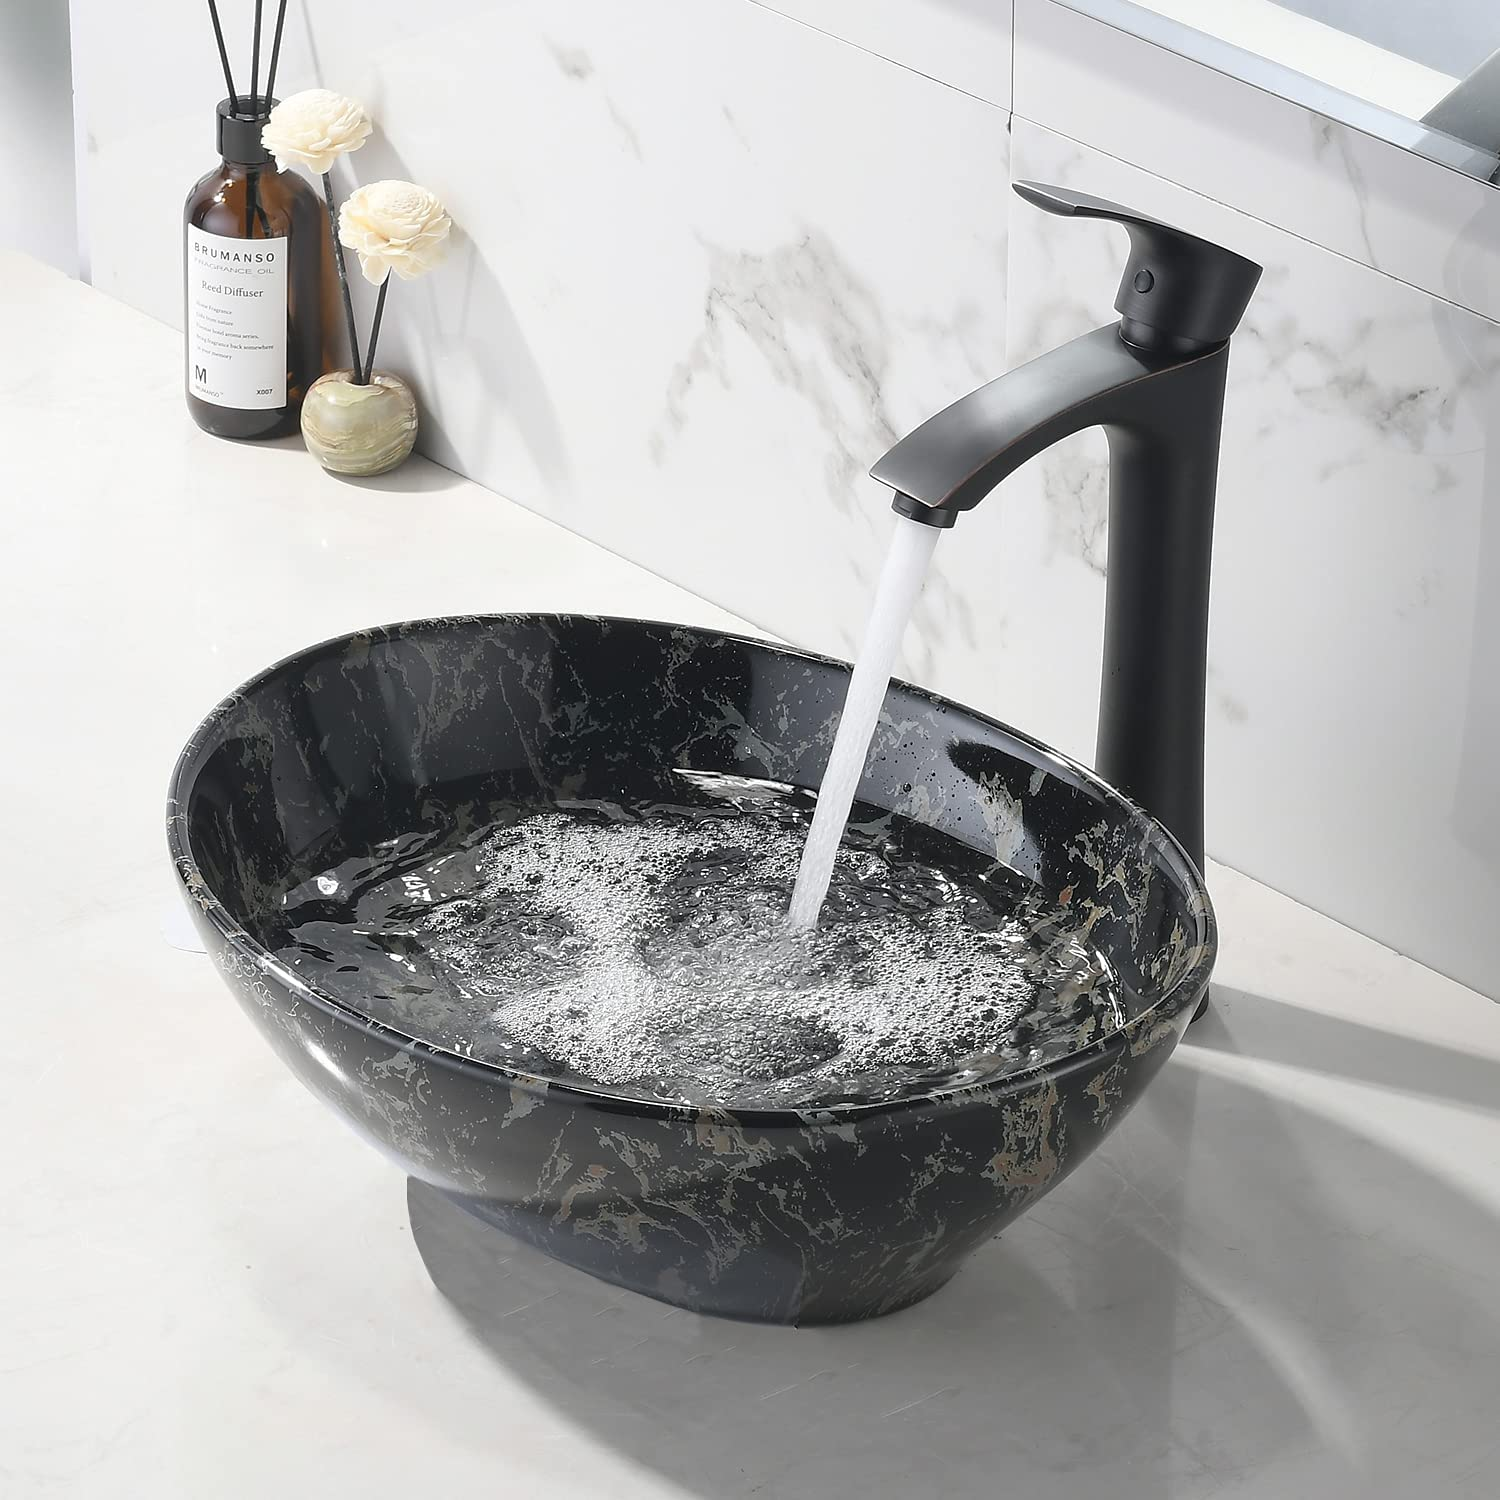 Buy Vokim Oval Marble Ceramic Vessel Sink And Faucet Combo 16 X 13 Modern Egg Shape Above Counter Bathroom Vanity Bowl Hellip Online In Taiwan B0928ndr9l